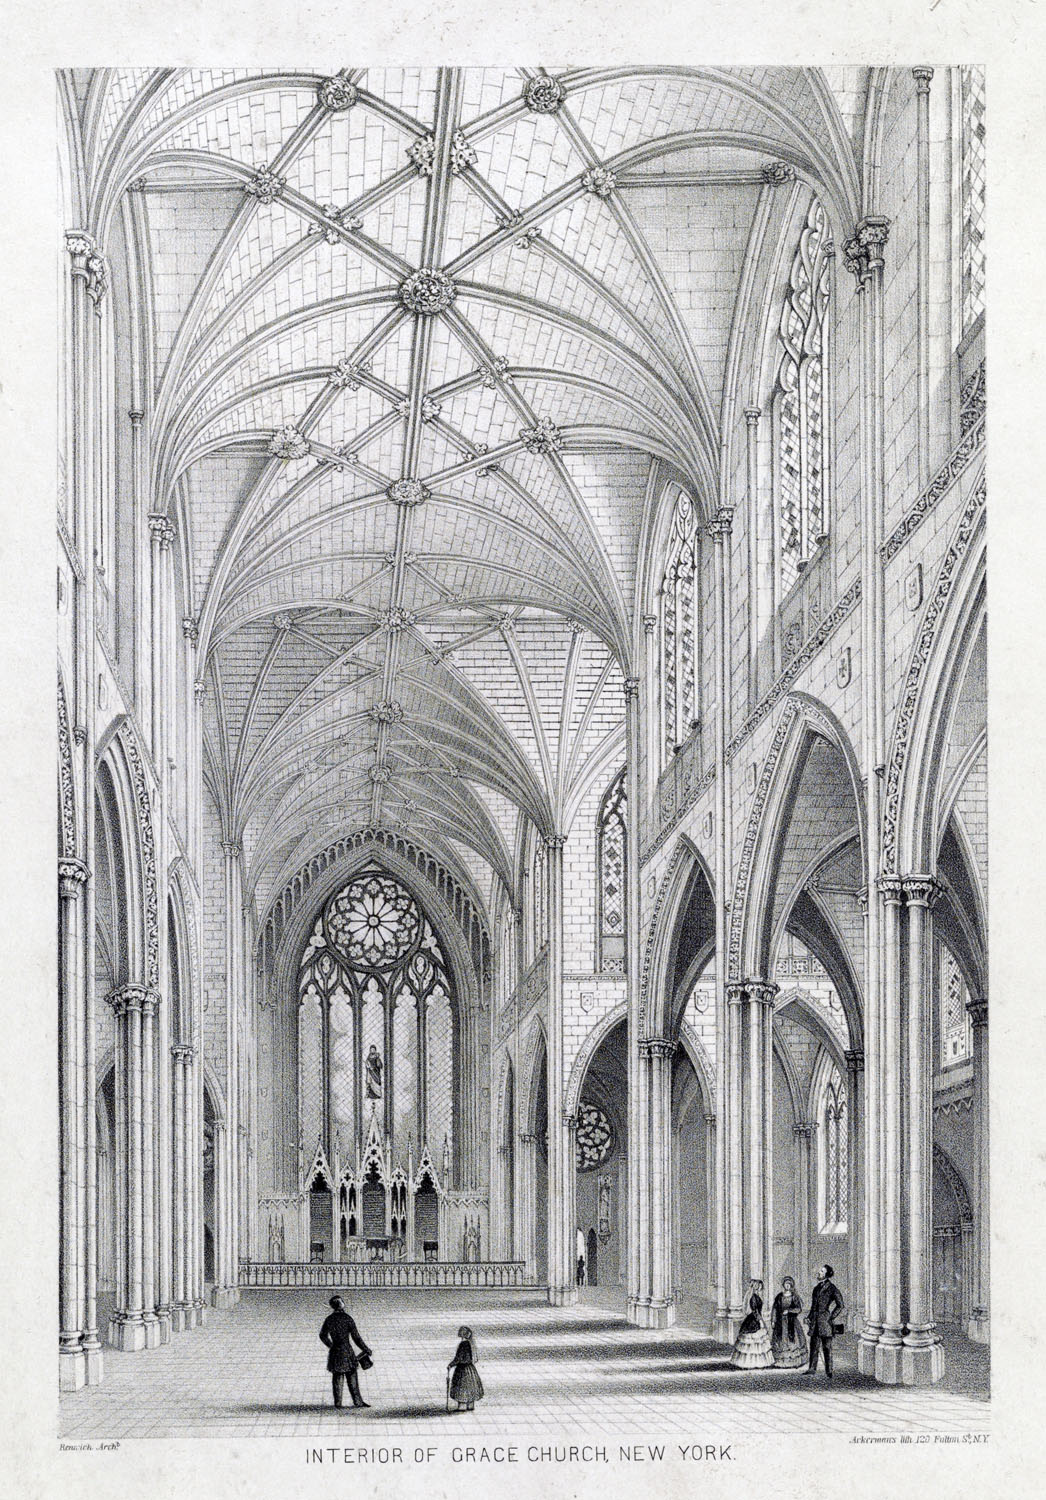 Architectural rendering by Ackerman's of the interior of Grace Church, New York City, Library of Congress